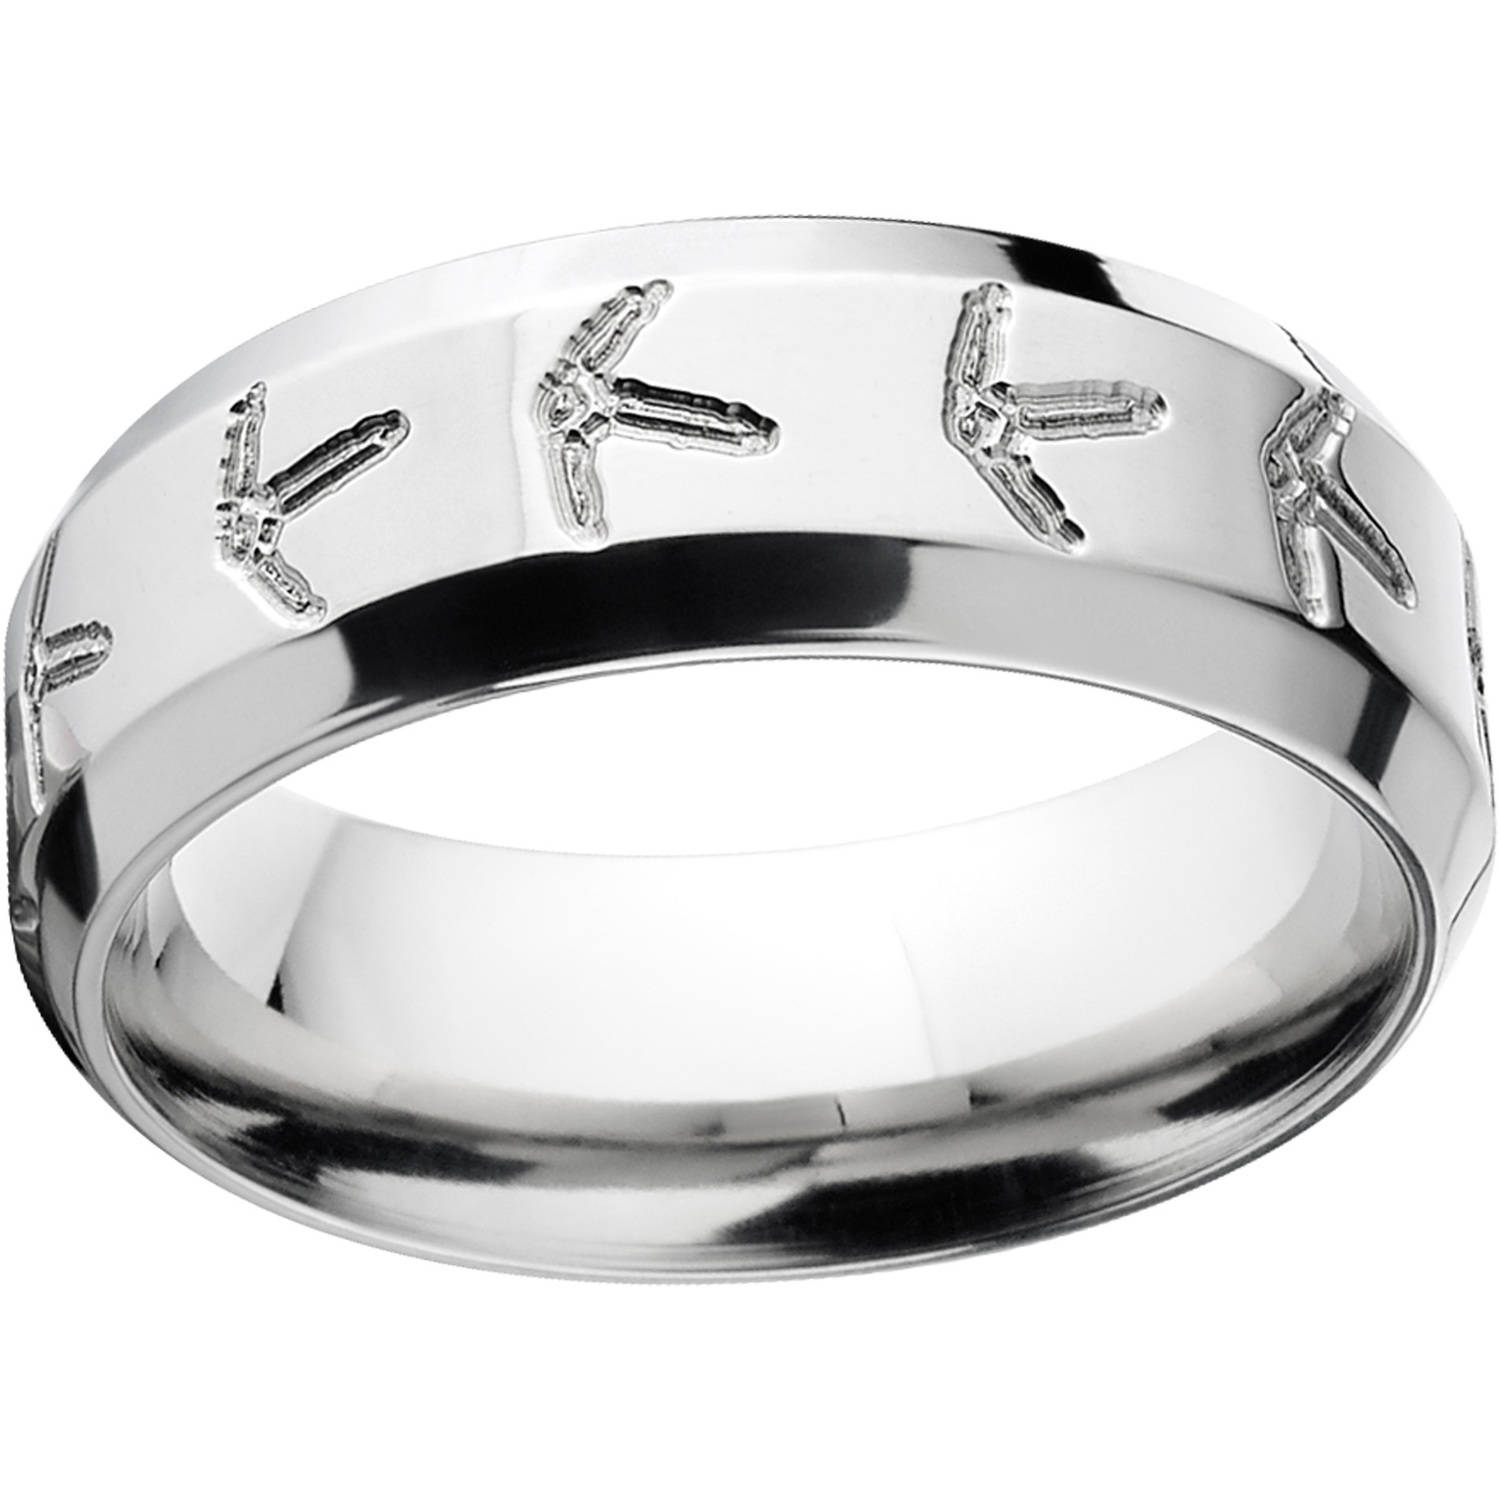 Mens Turkey Track 8mm Stainless Steel Wedding Band with Comfort